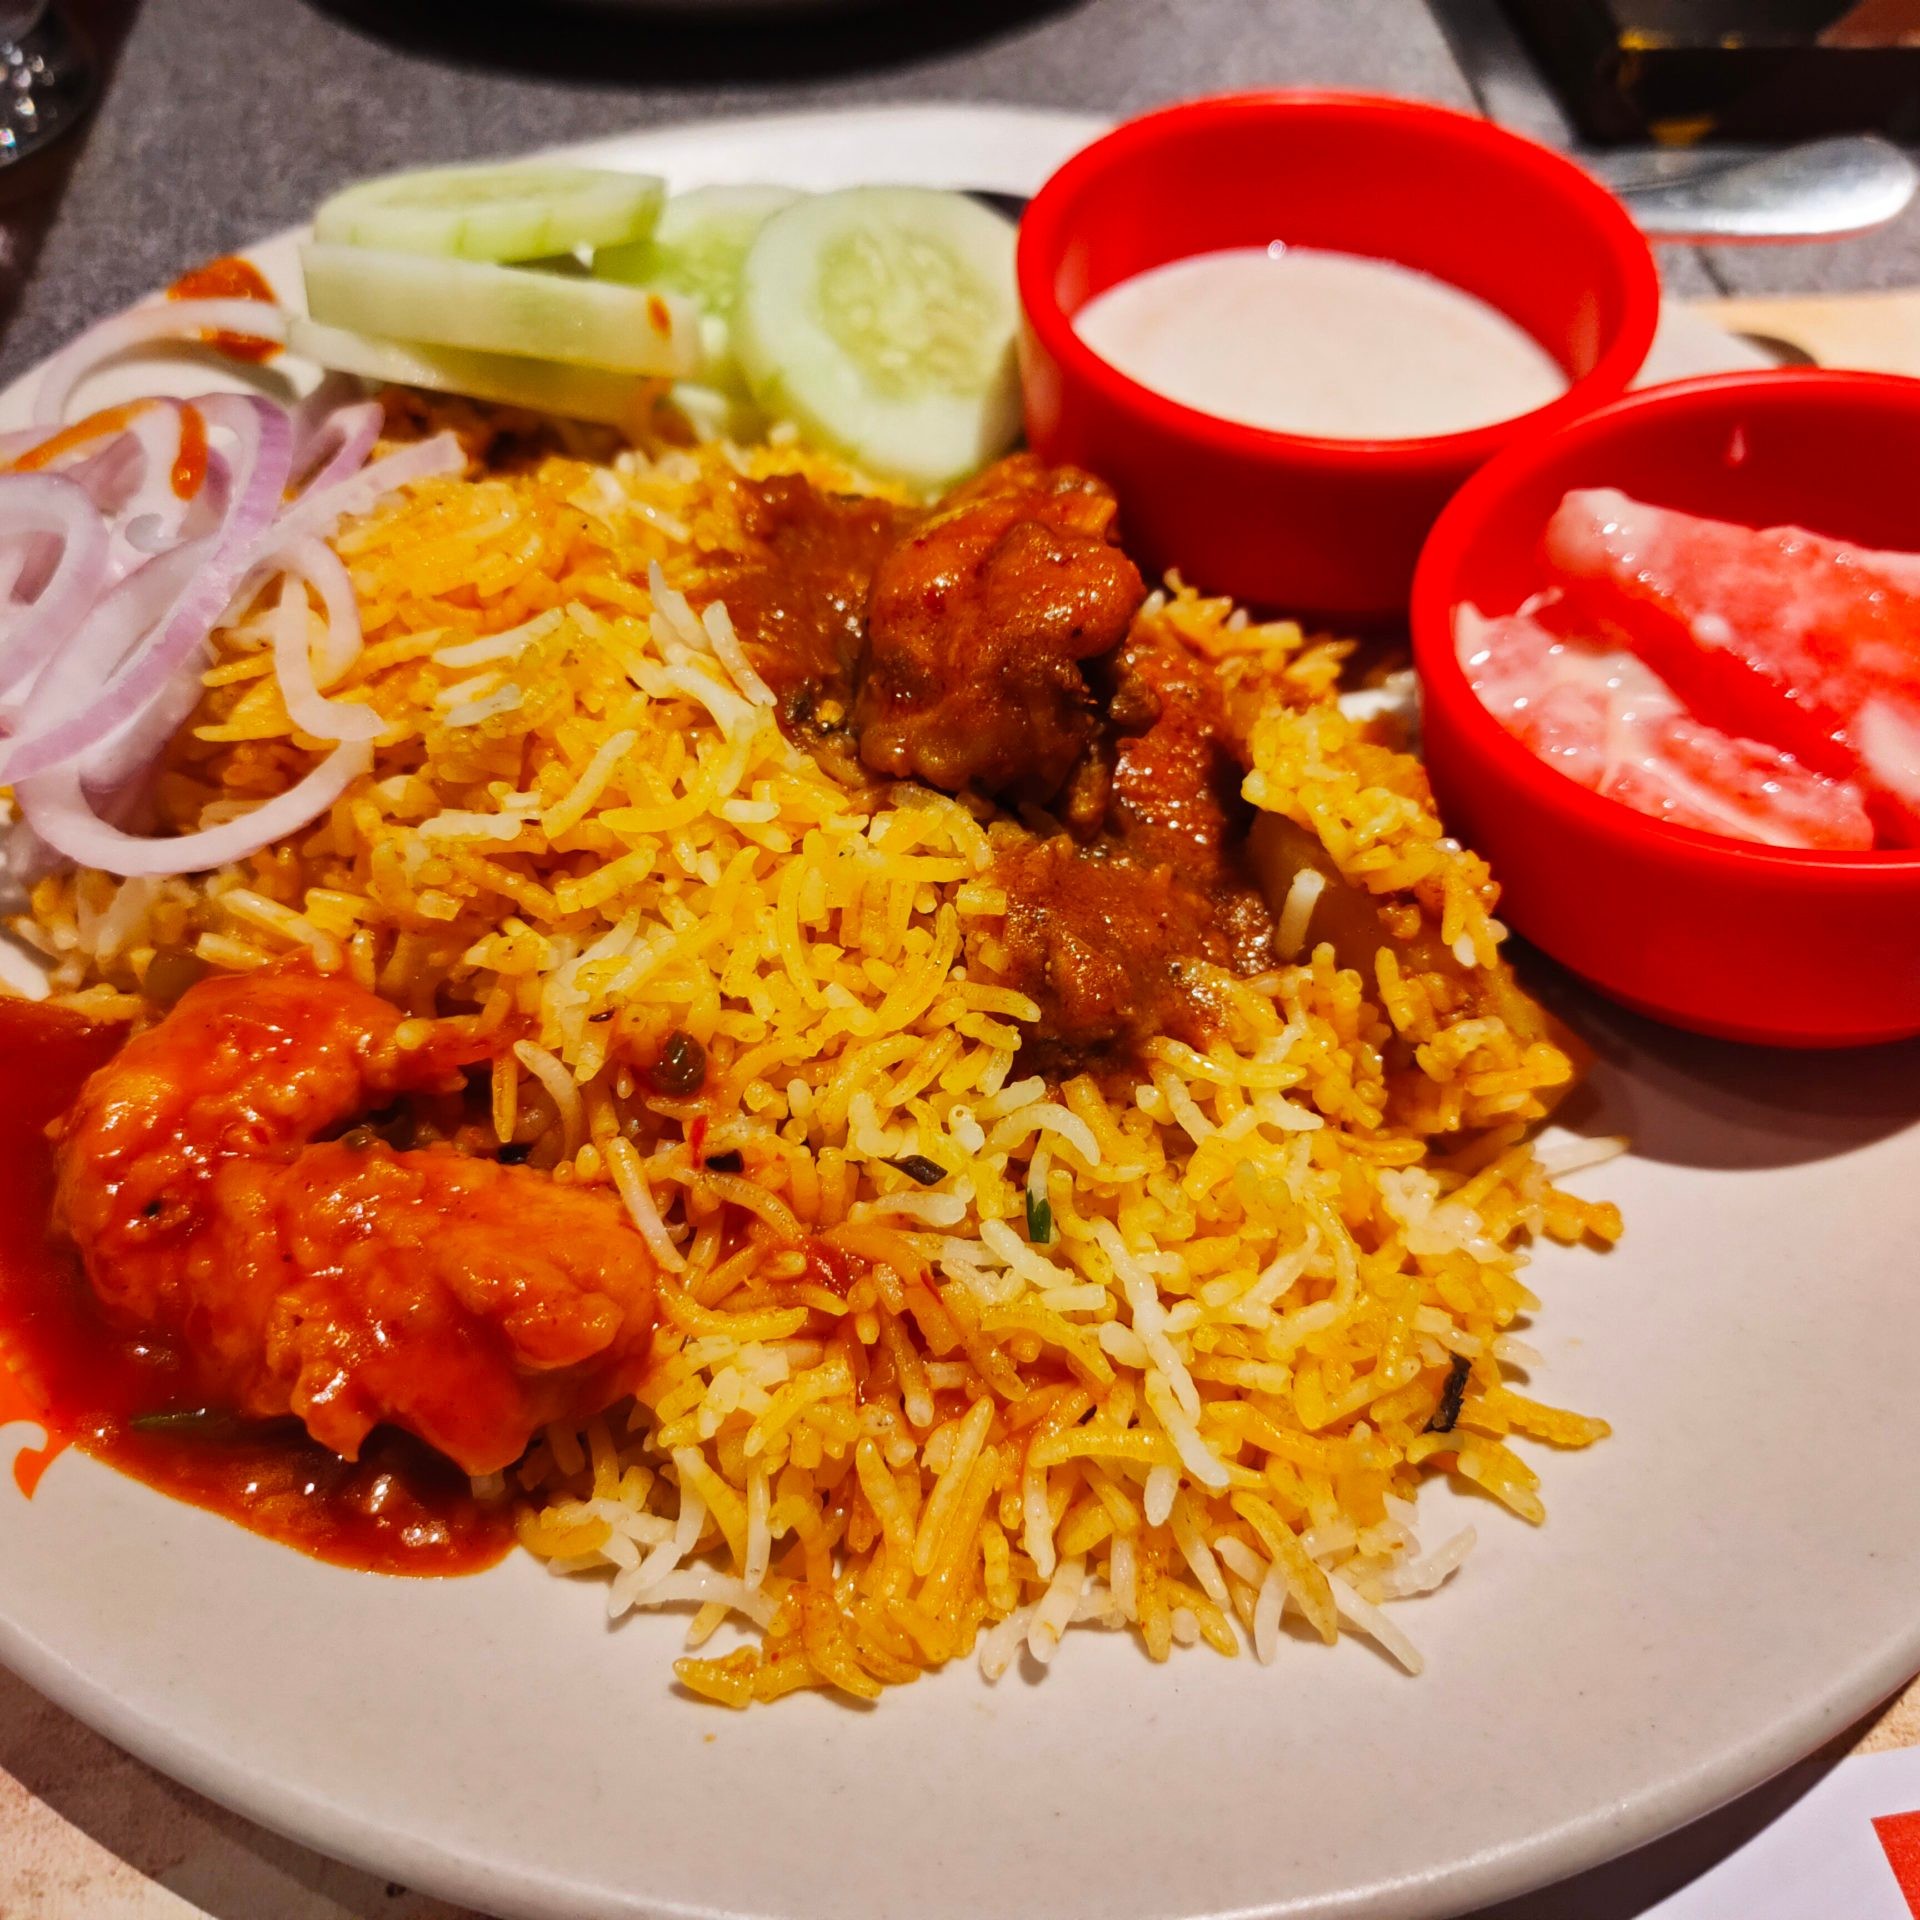 BBQ Nation - CHICKEN DUM BIRYANI, KADHAI CHICKEN, Green Salad, Raita, Fruit Salad